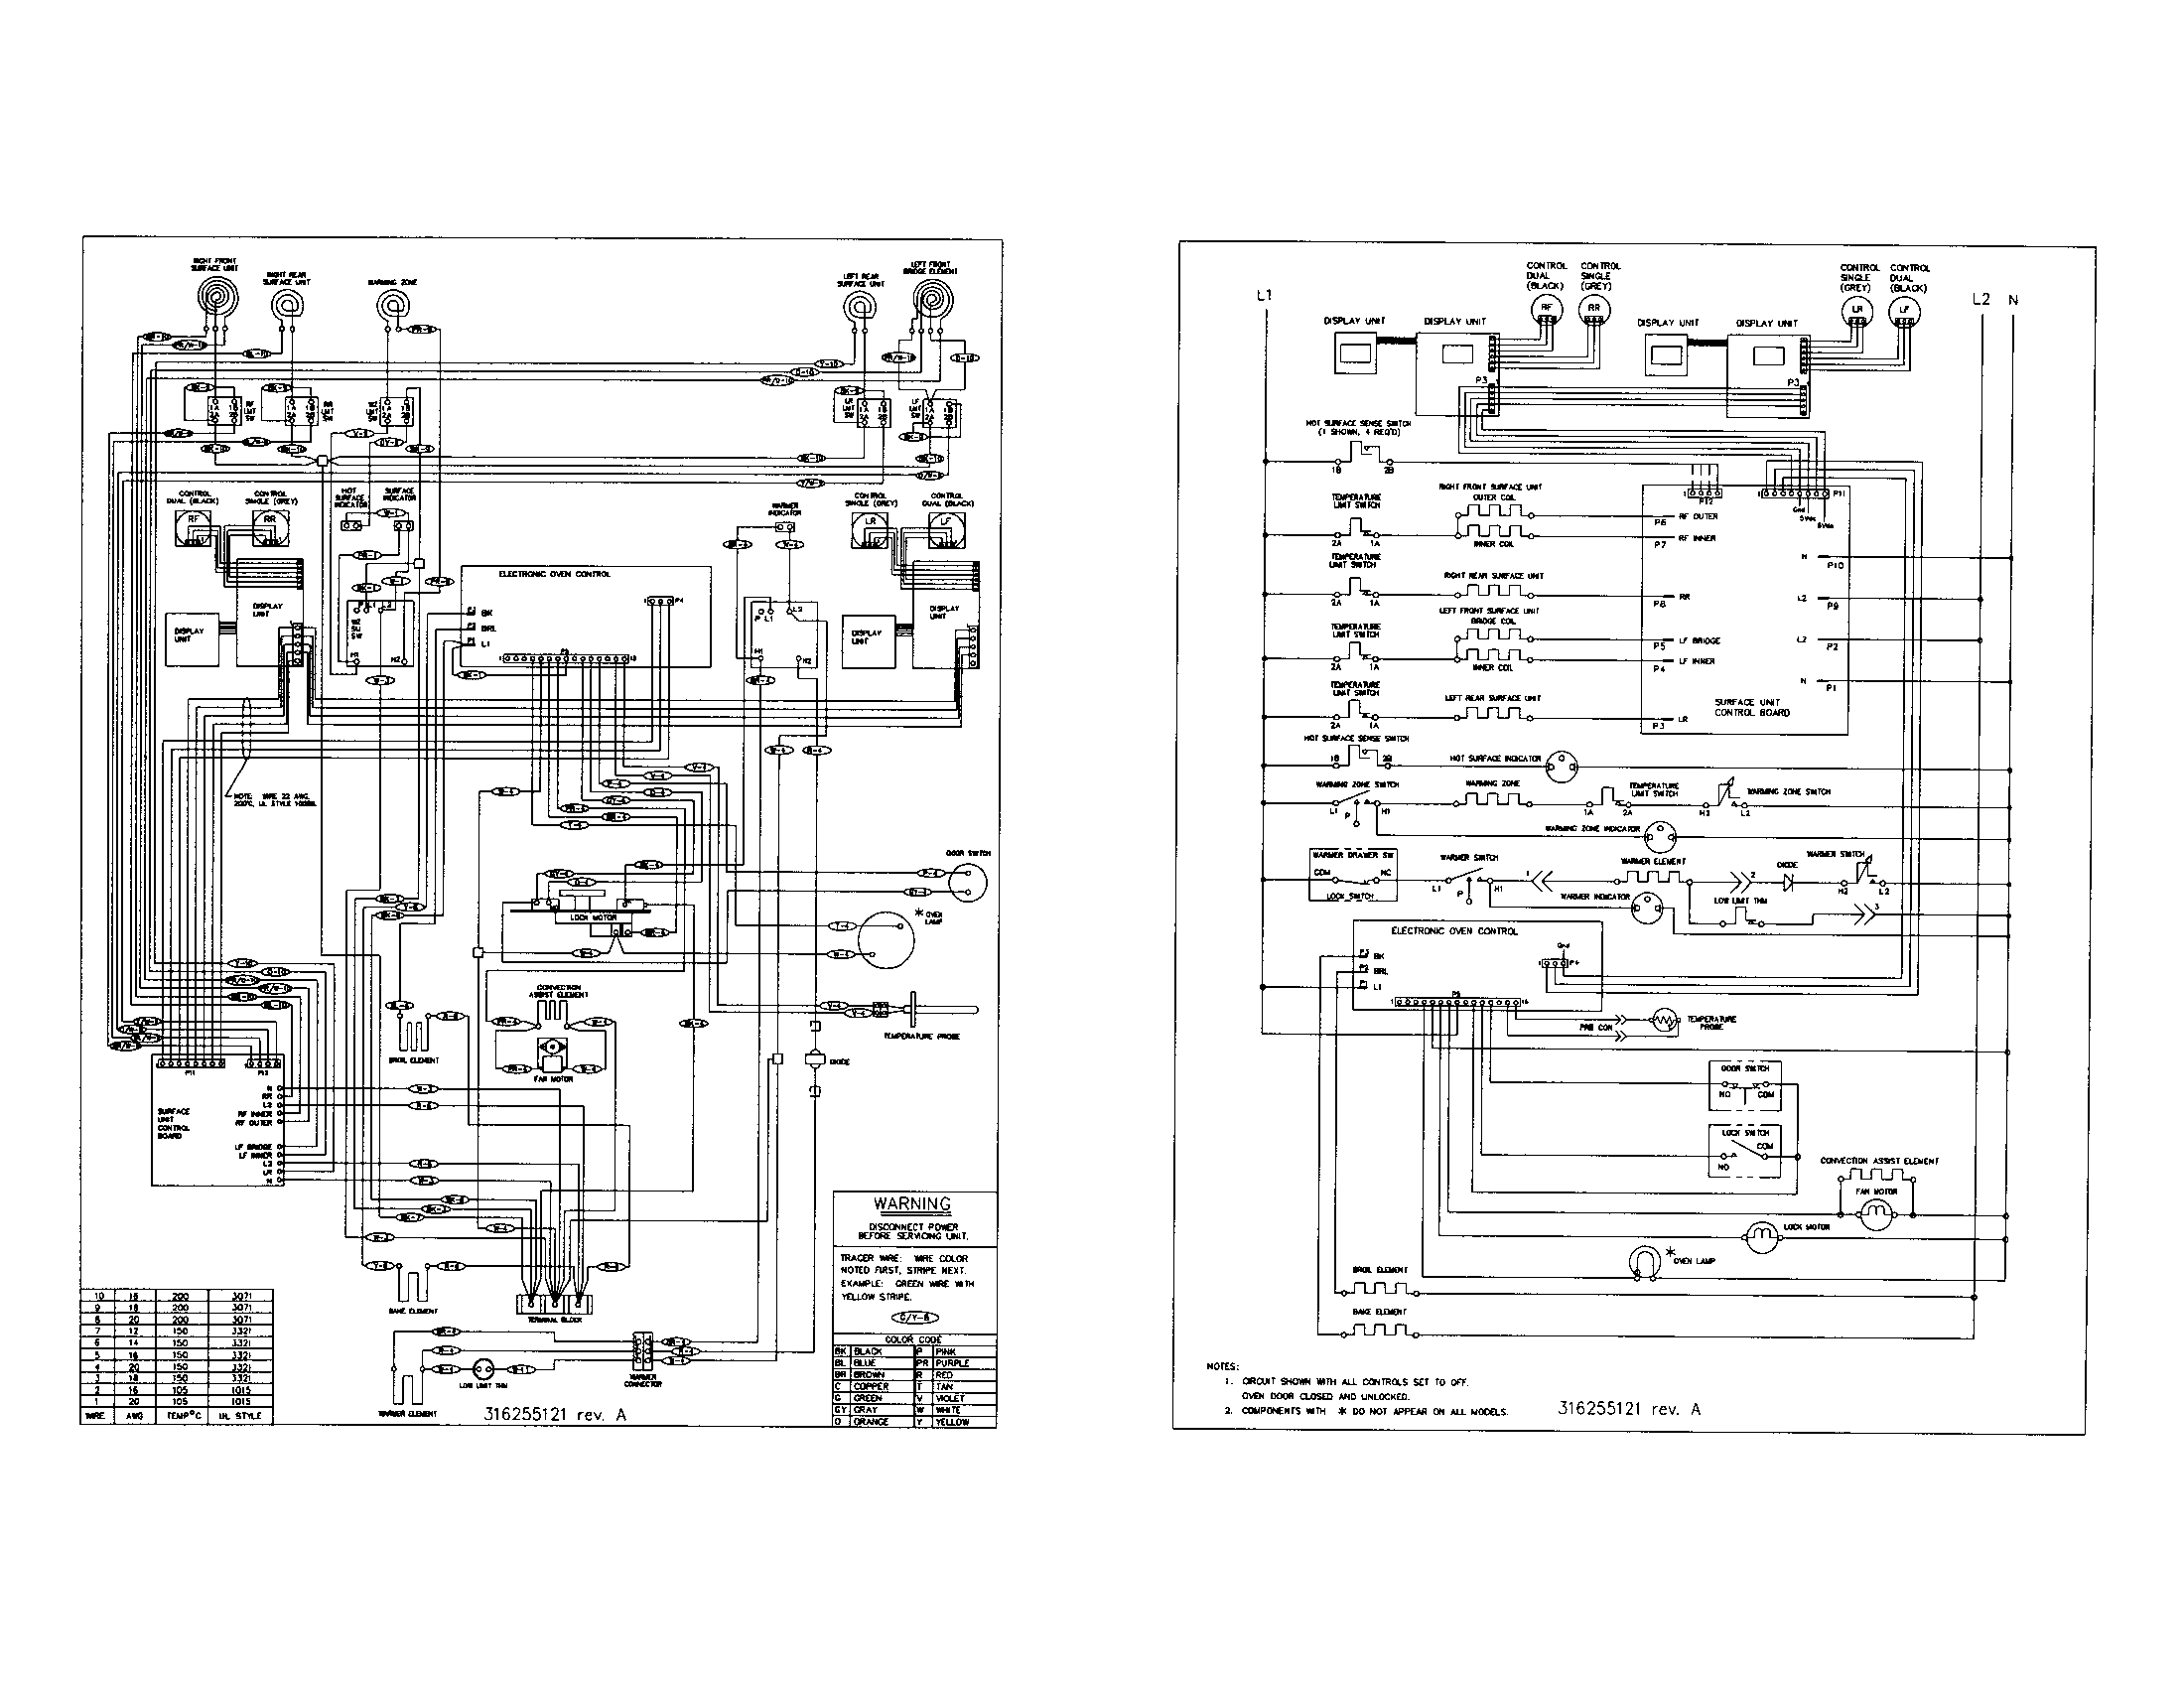 wiring diagram for kitchenaid dishwasher – readingrat, Wiring diagram